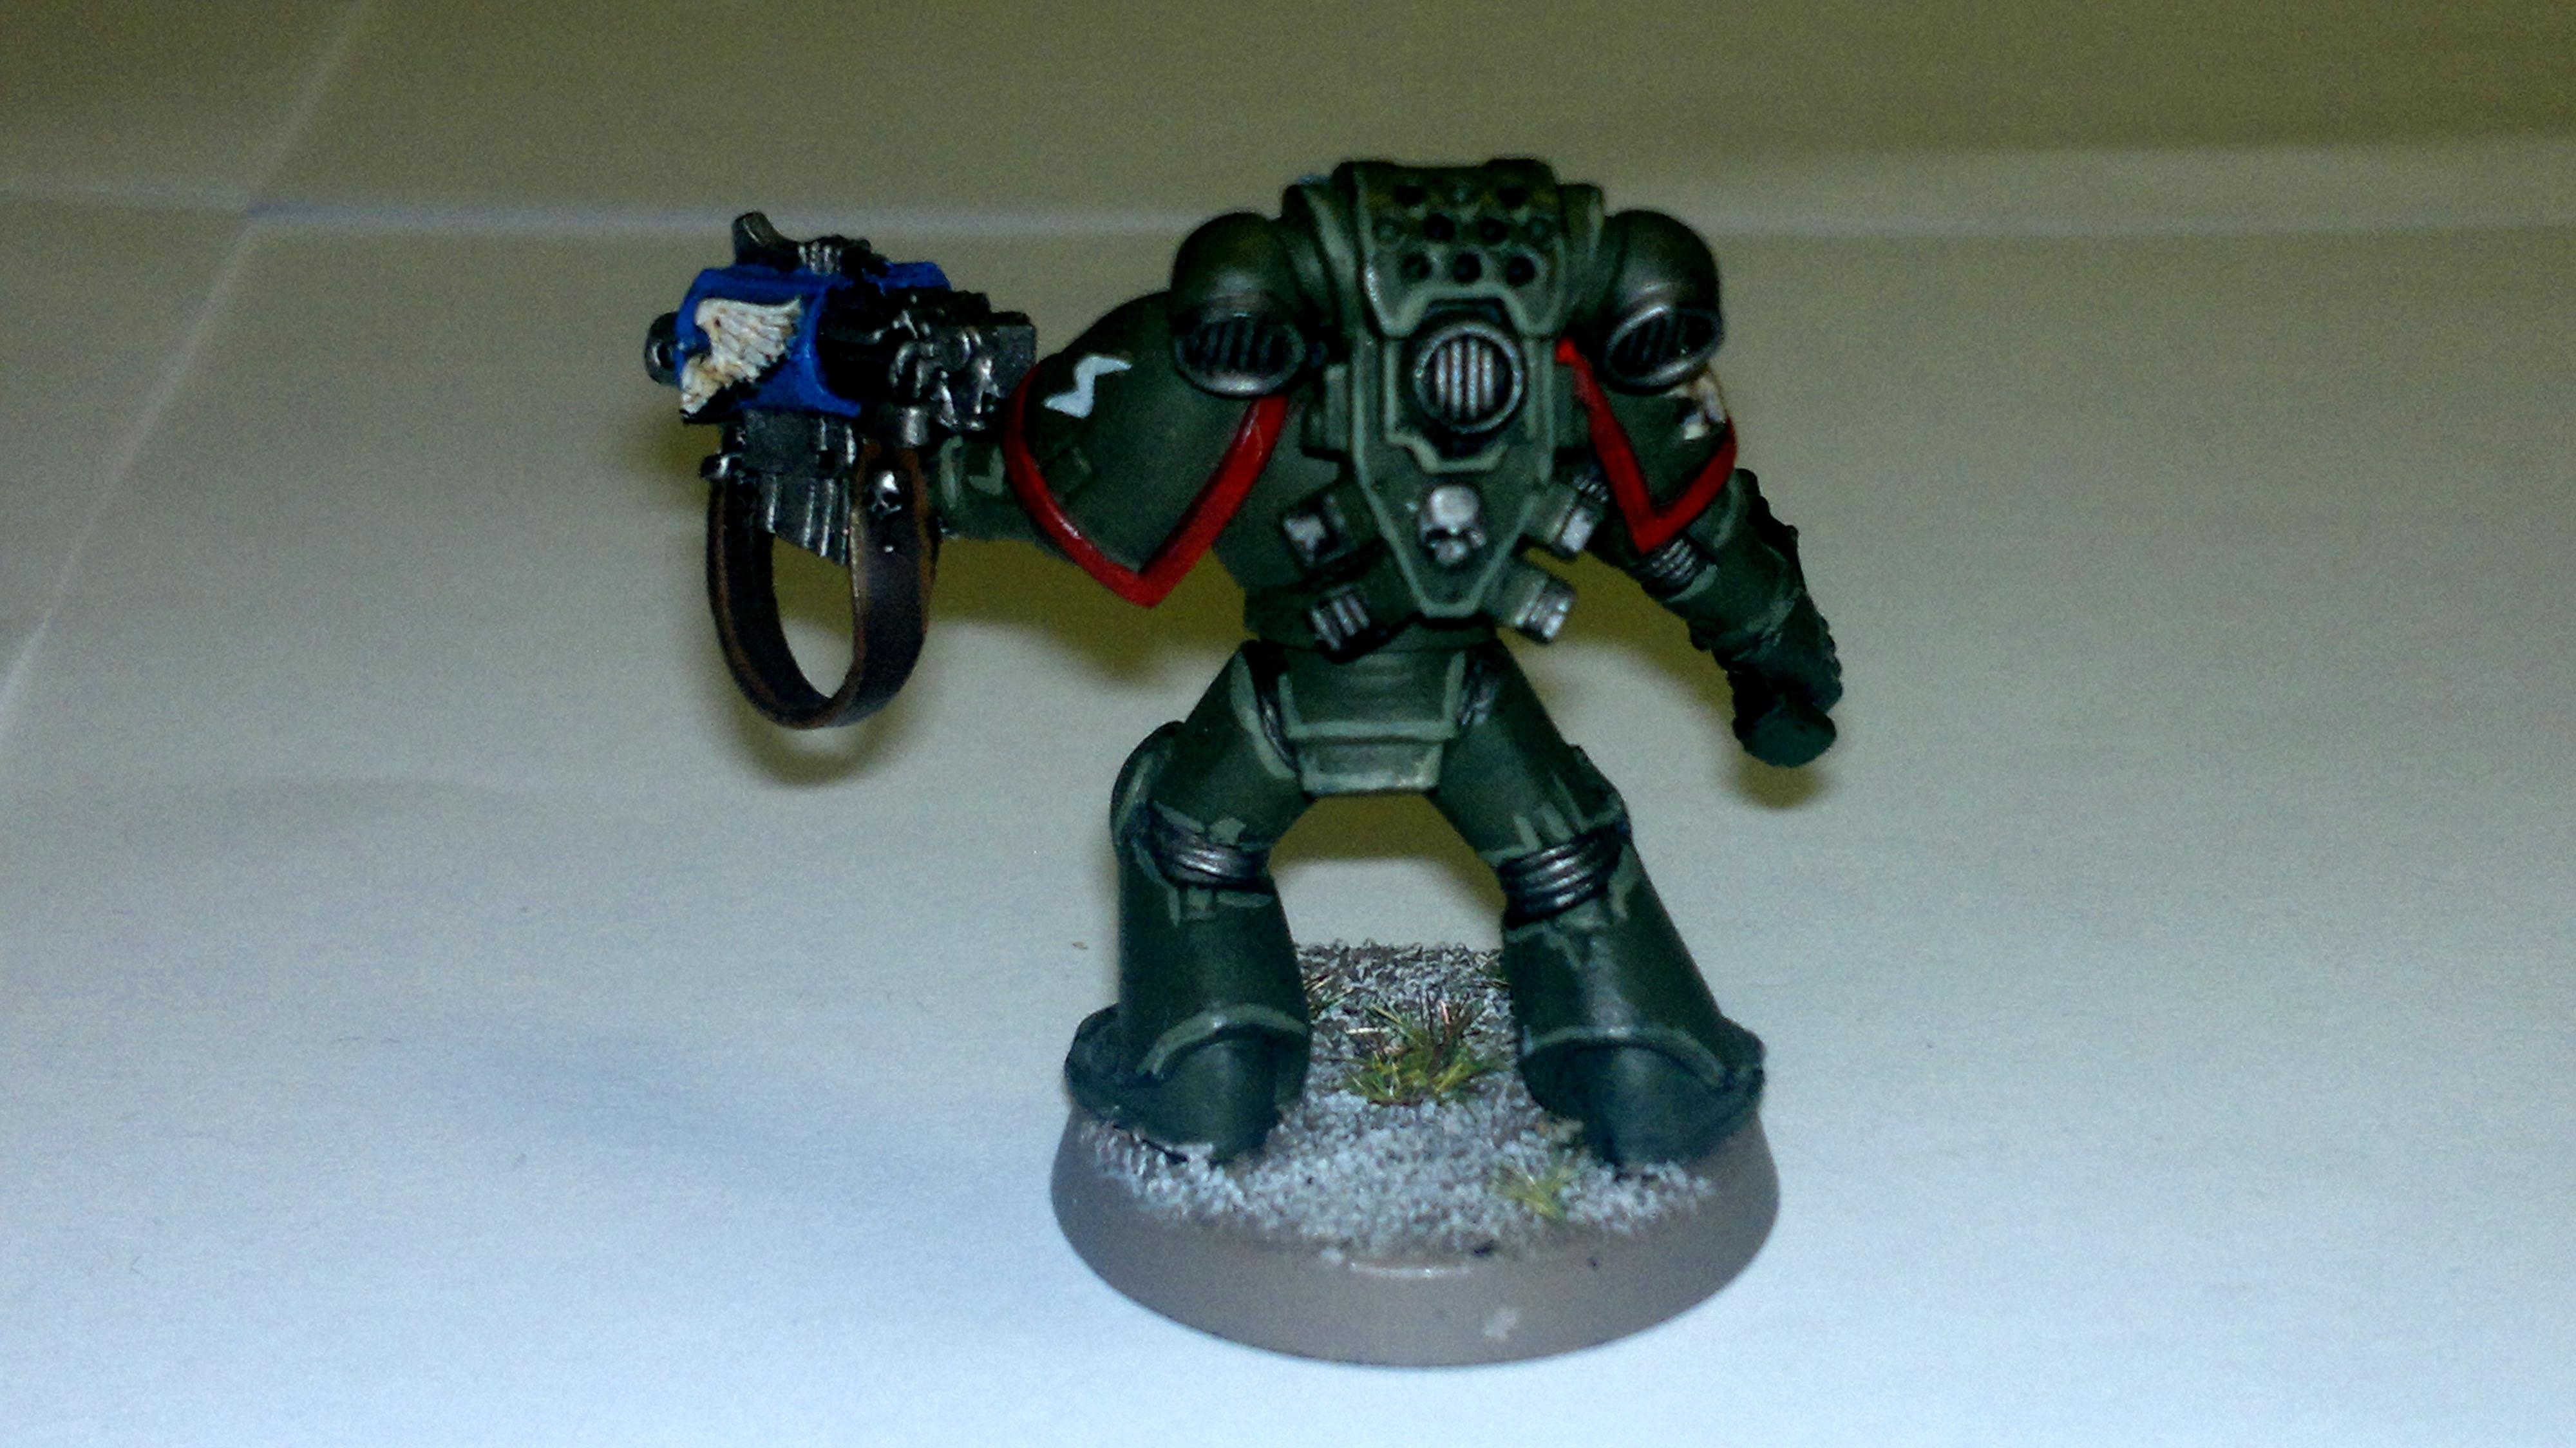 Broken Swords, Command Squa, Space Marines, Storm Bolter, Veteran, Warhammer 40,000